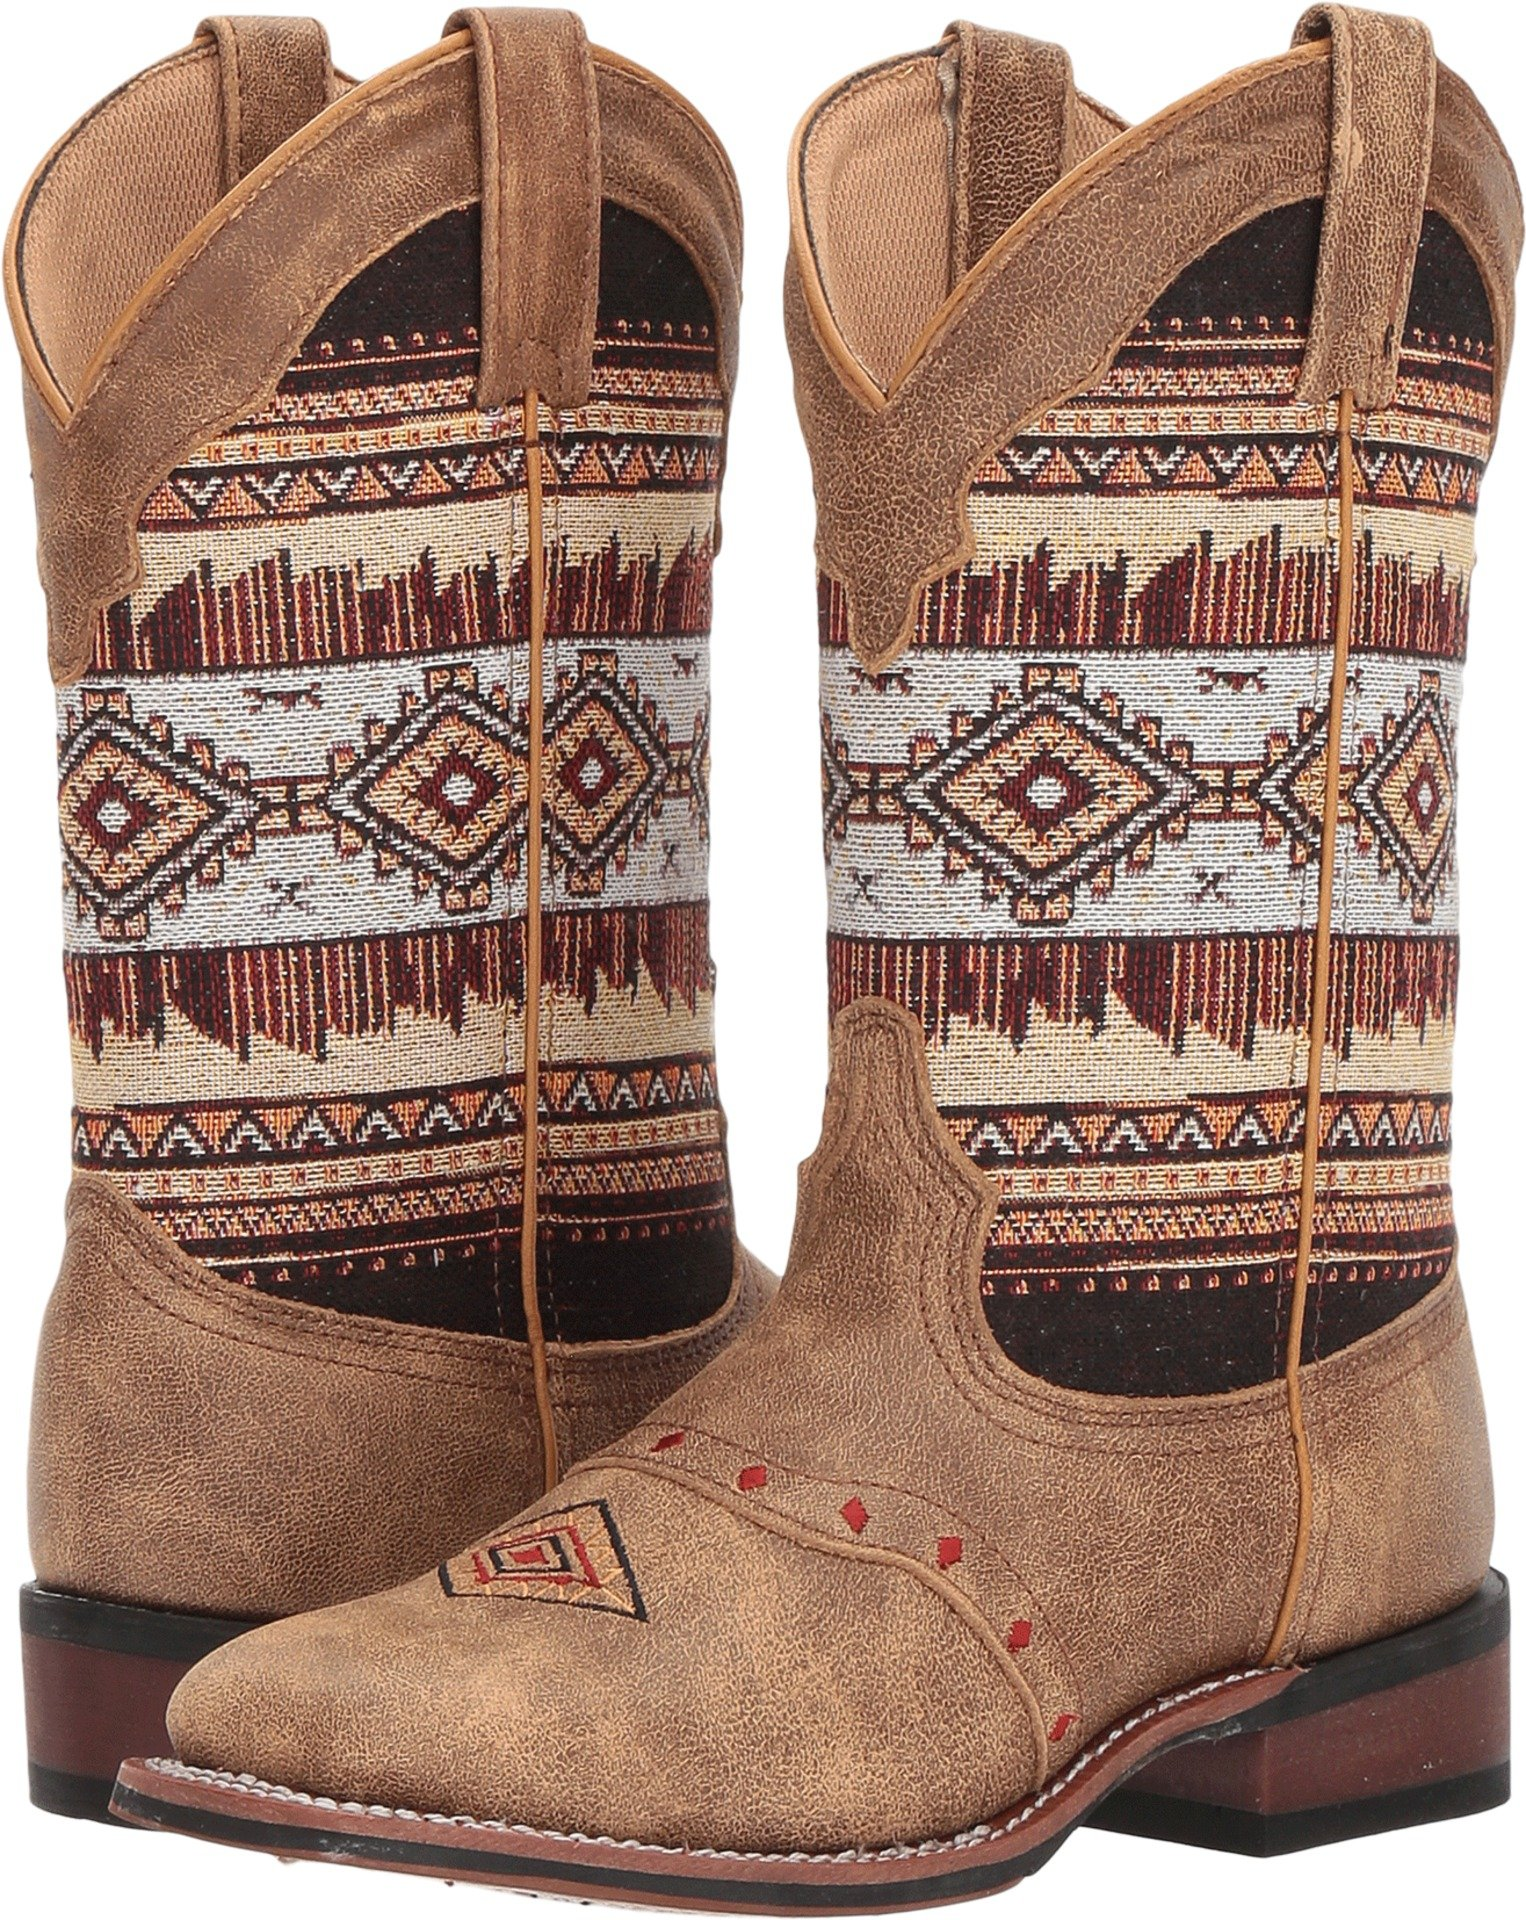 Laredo Womens Tan/Brown Cowboy Boots Leather Cowboy Boots Square Toe 8 M